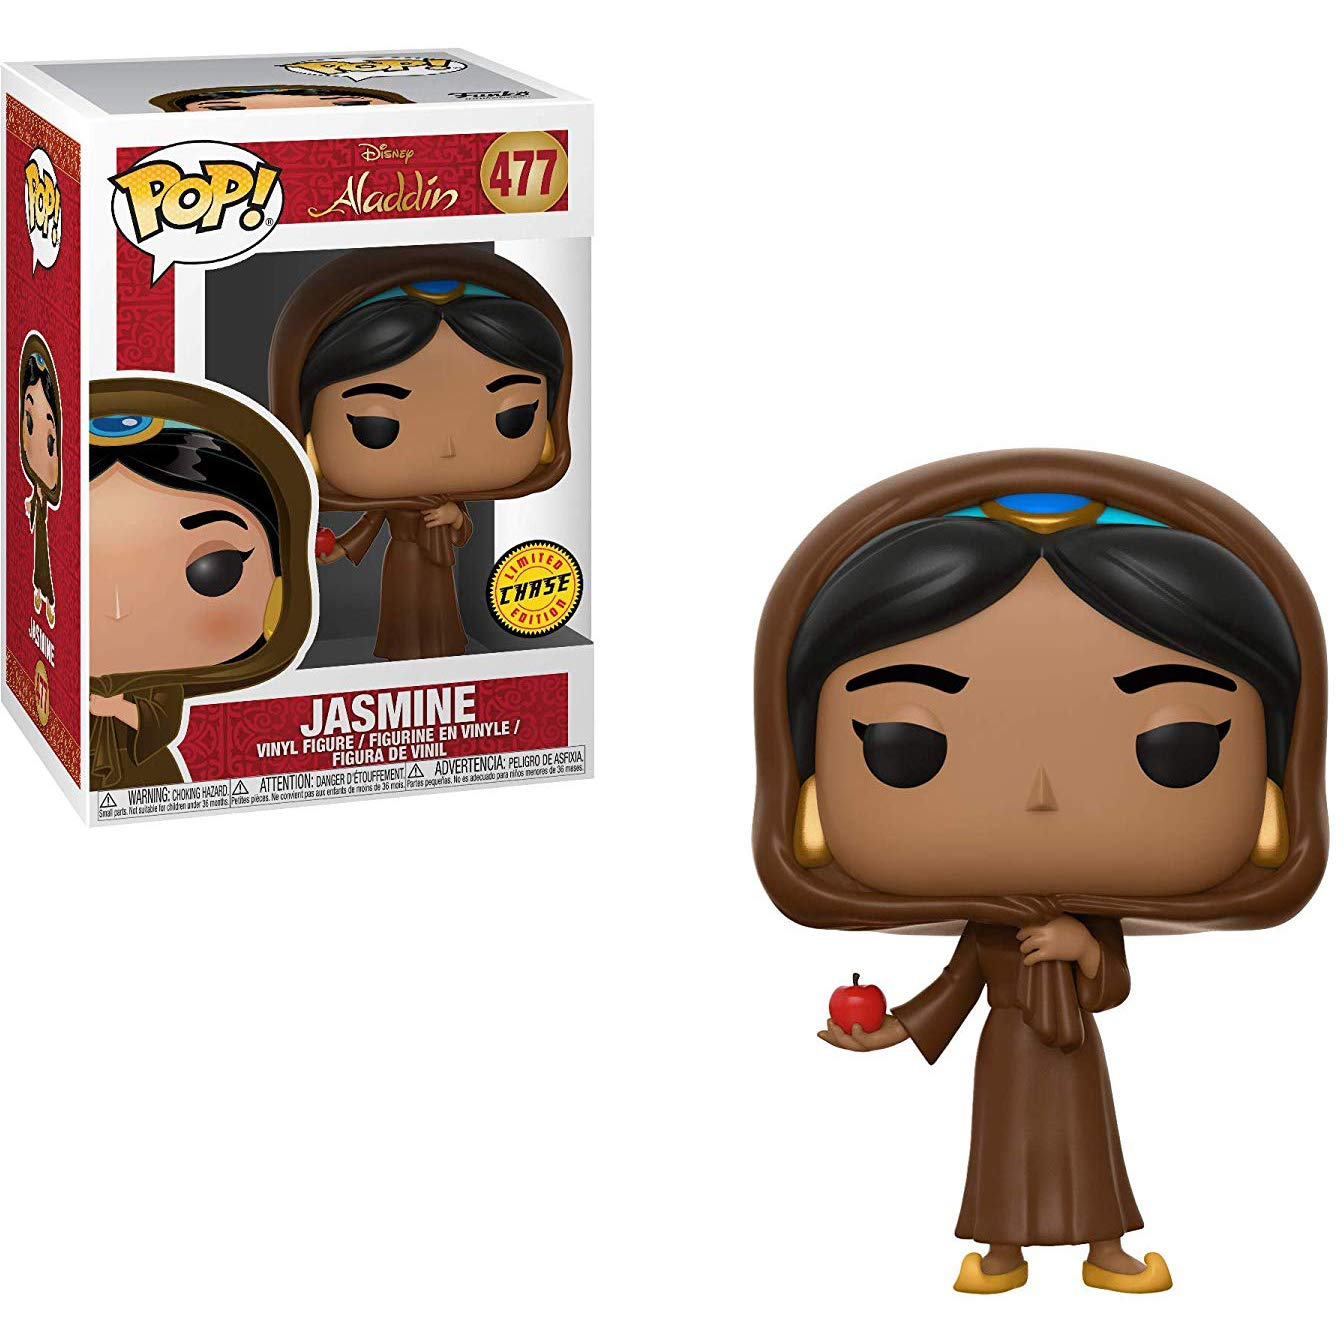 Chase Edition BCC940N72 #477 // 35754 - B Funko Jasmine Disney Vinyl Figure /& 1 PET Plastic Graphical Protector Bundle : Aladdin x POP